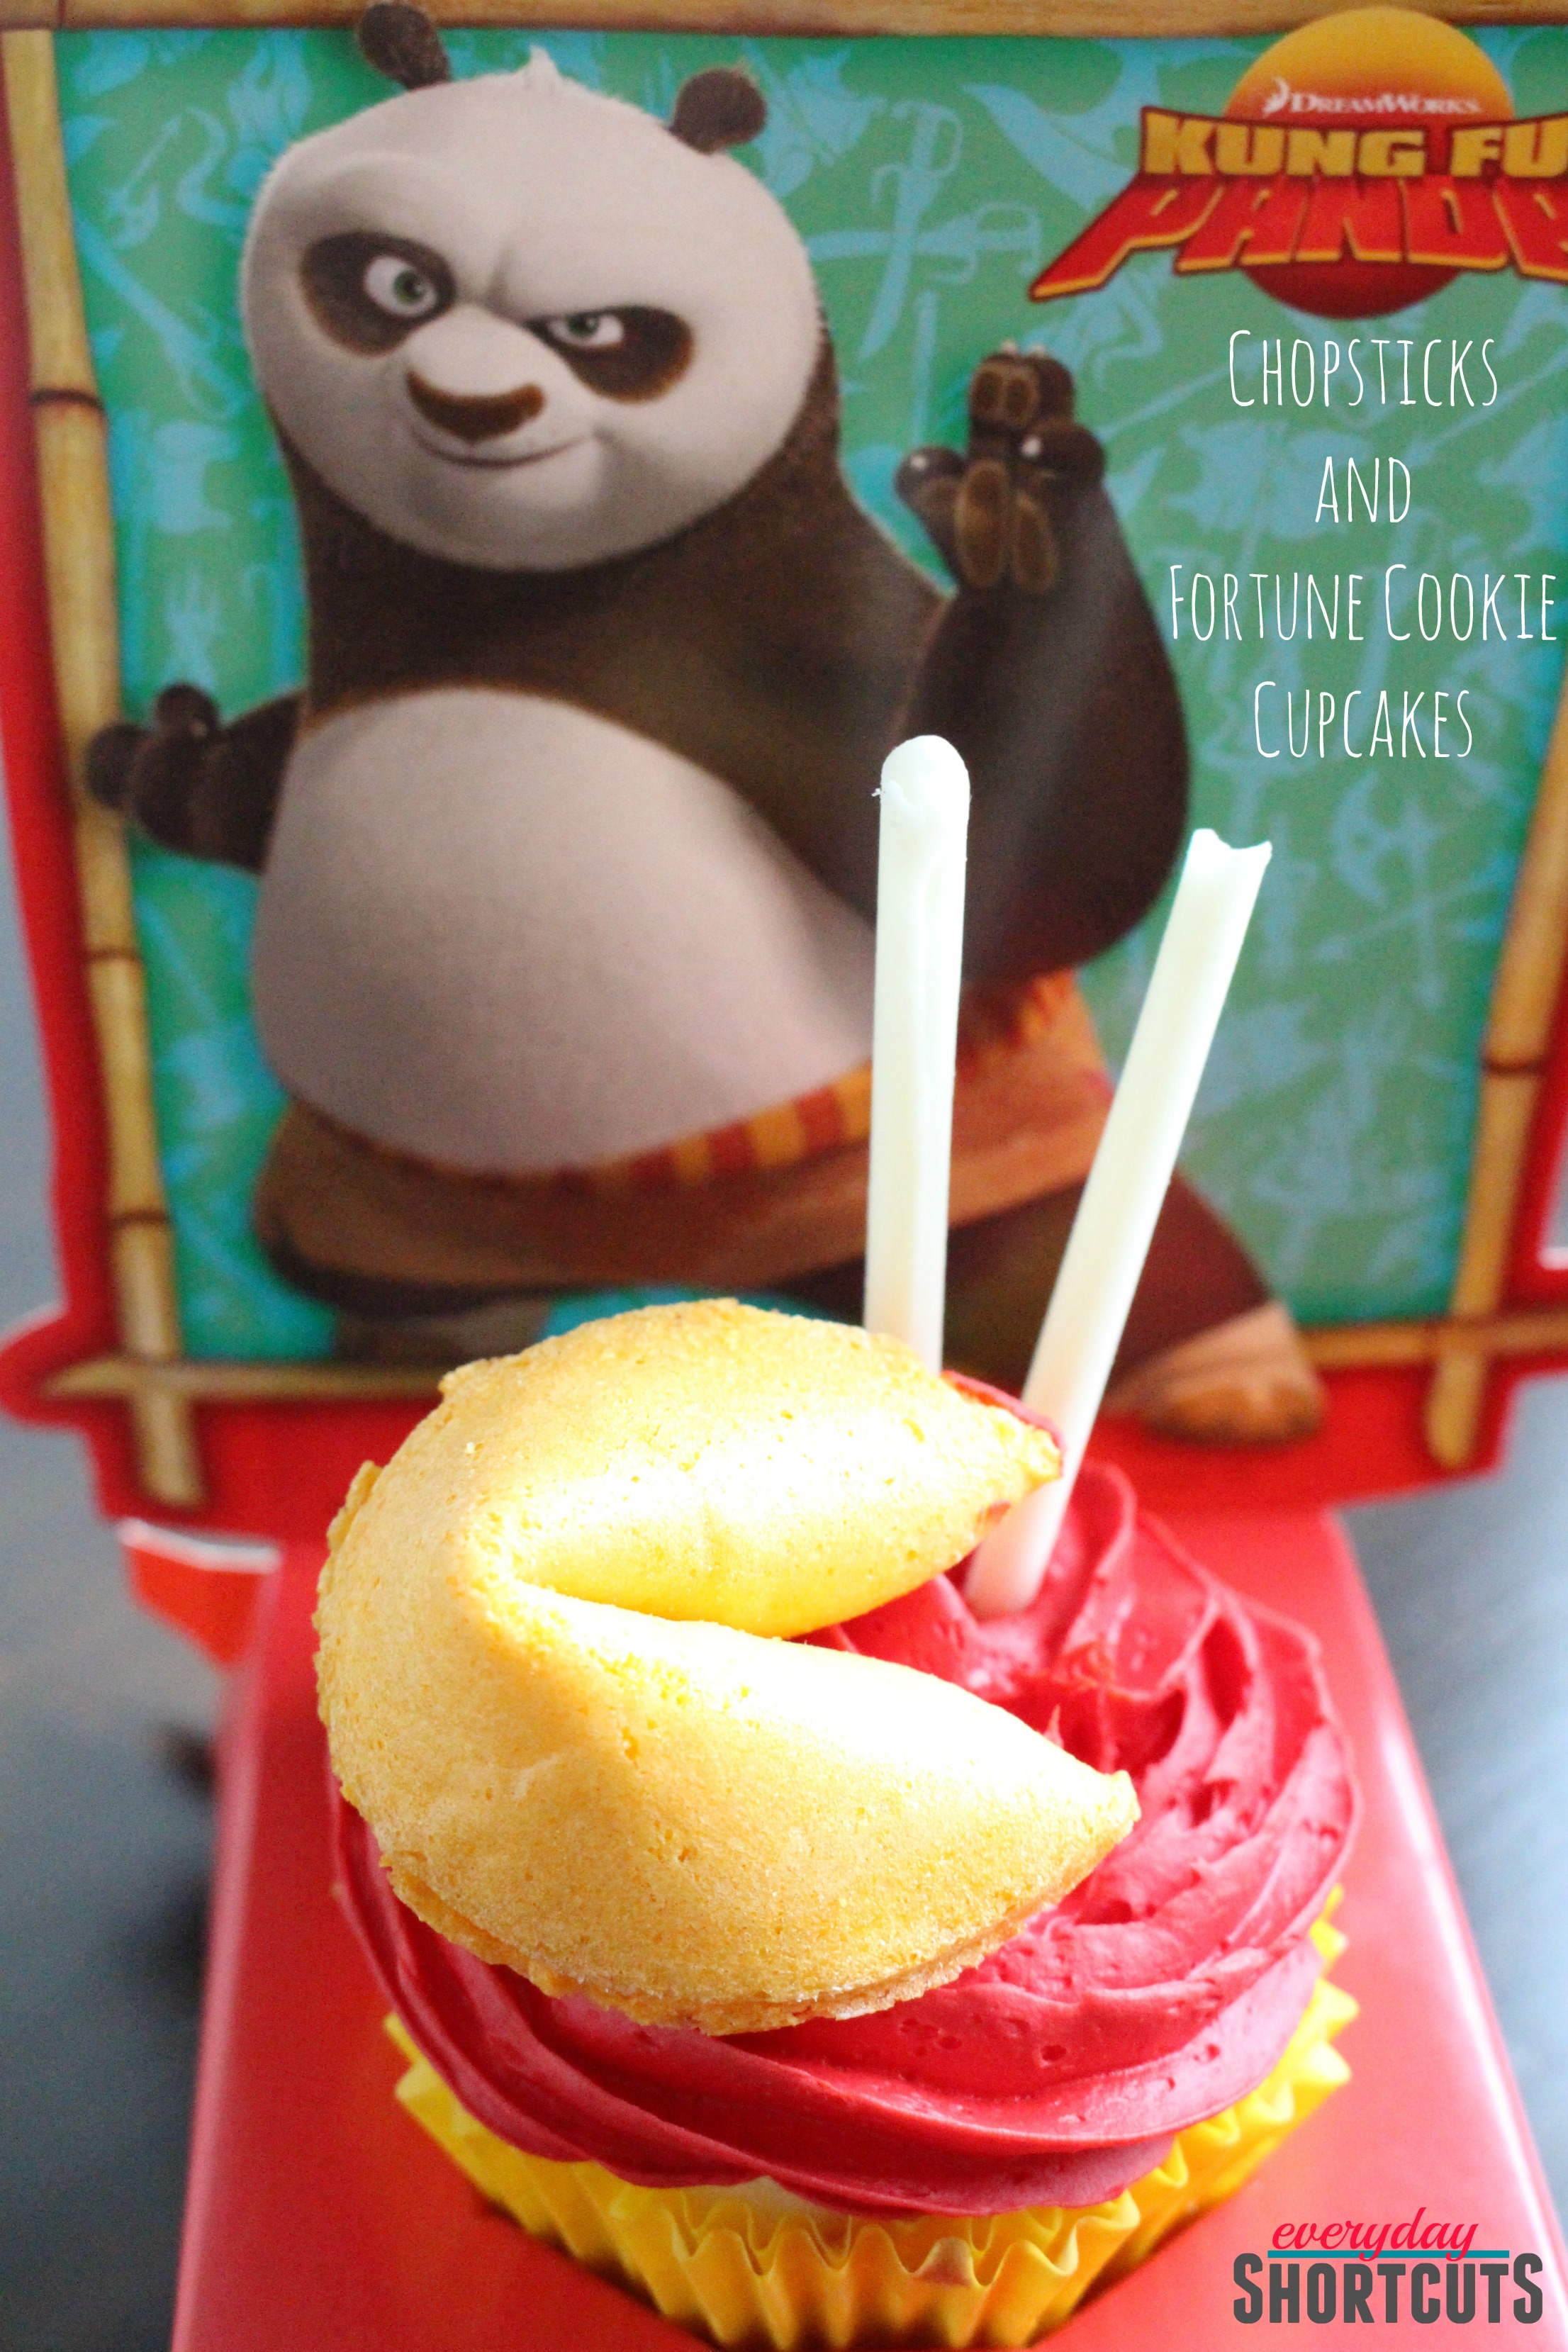 Kung Fu Panda Chopsticks and Fortune Cookie Cupcakes